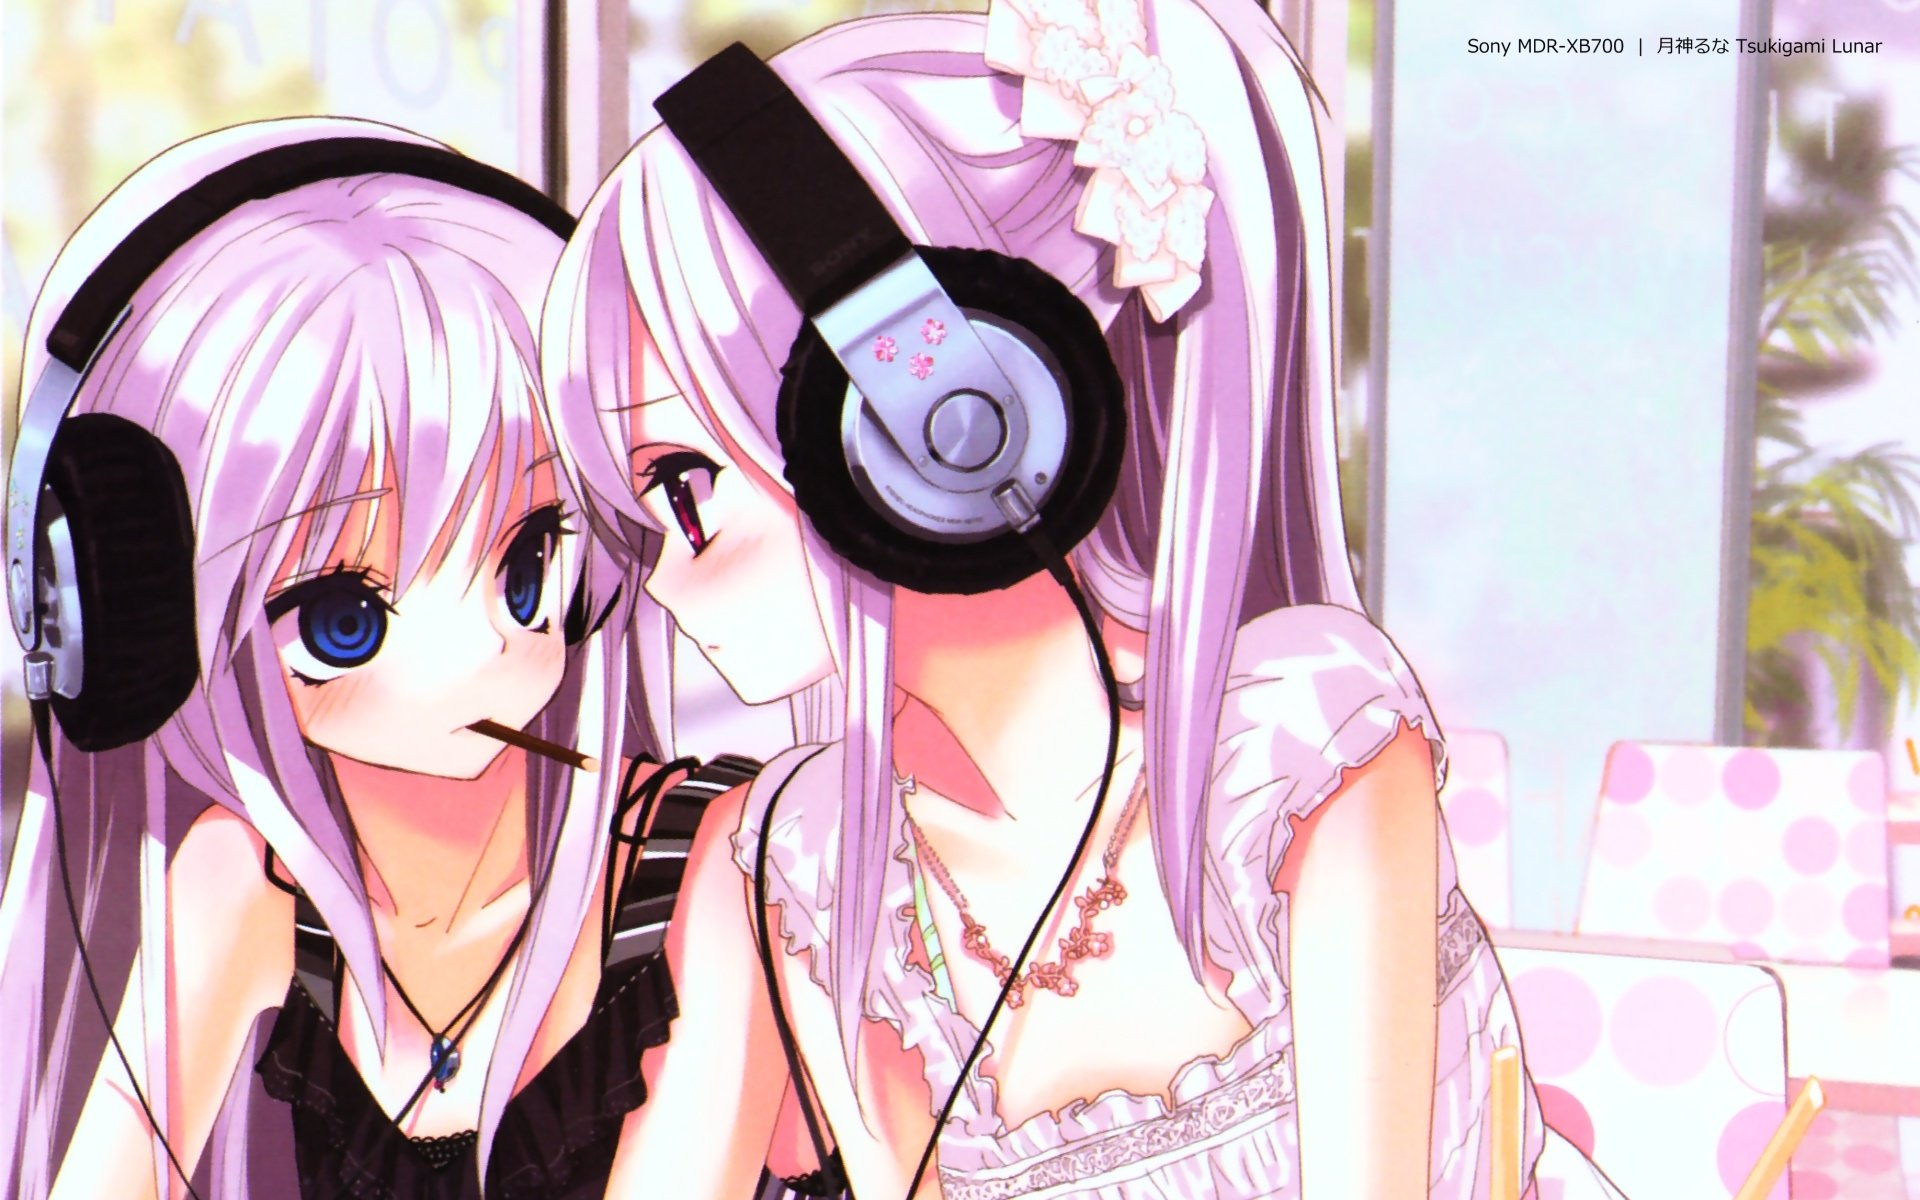 Anime Headphones Wallpaper